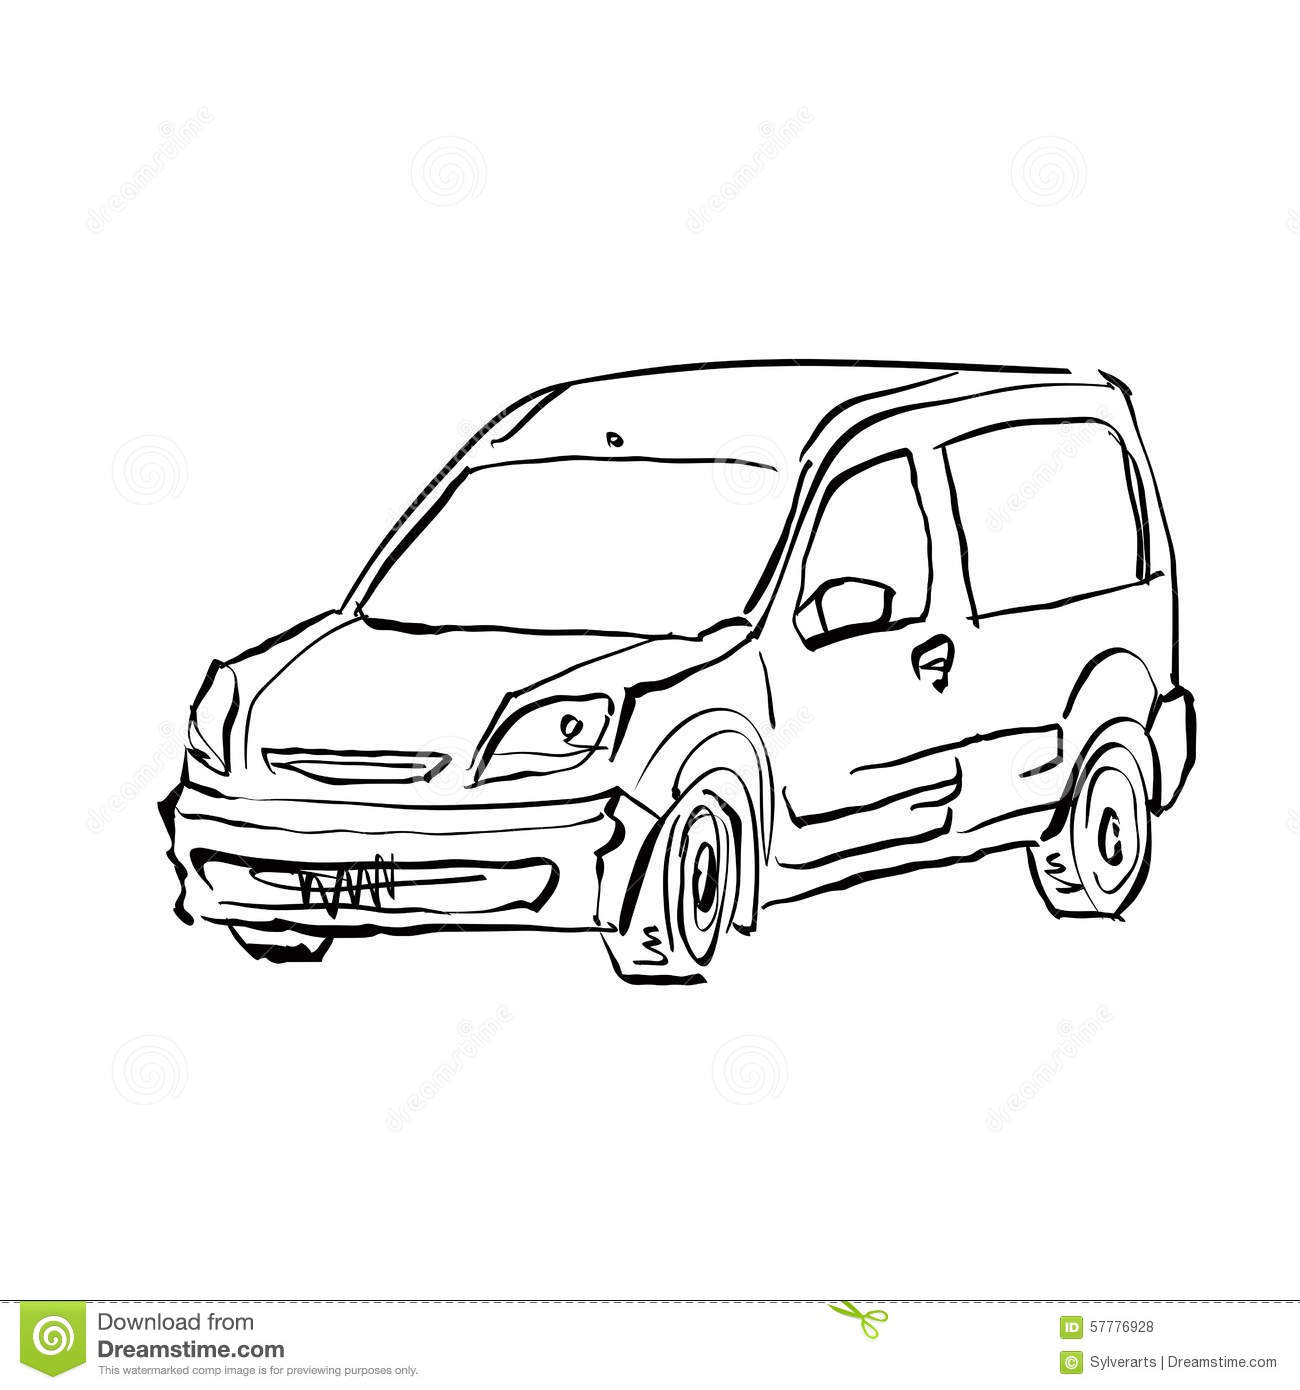 Monochrome Hand Drawn Car On White Background Cartoon Vector